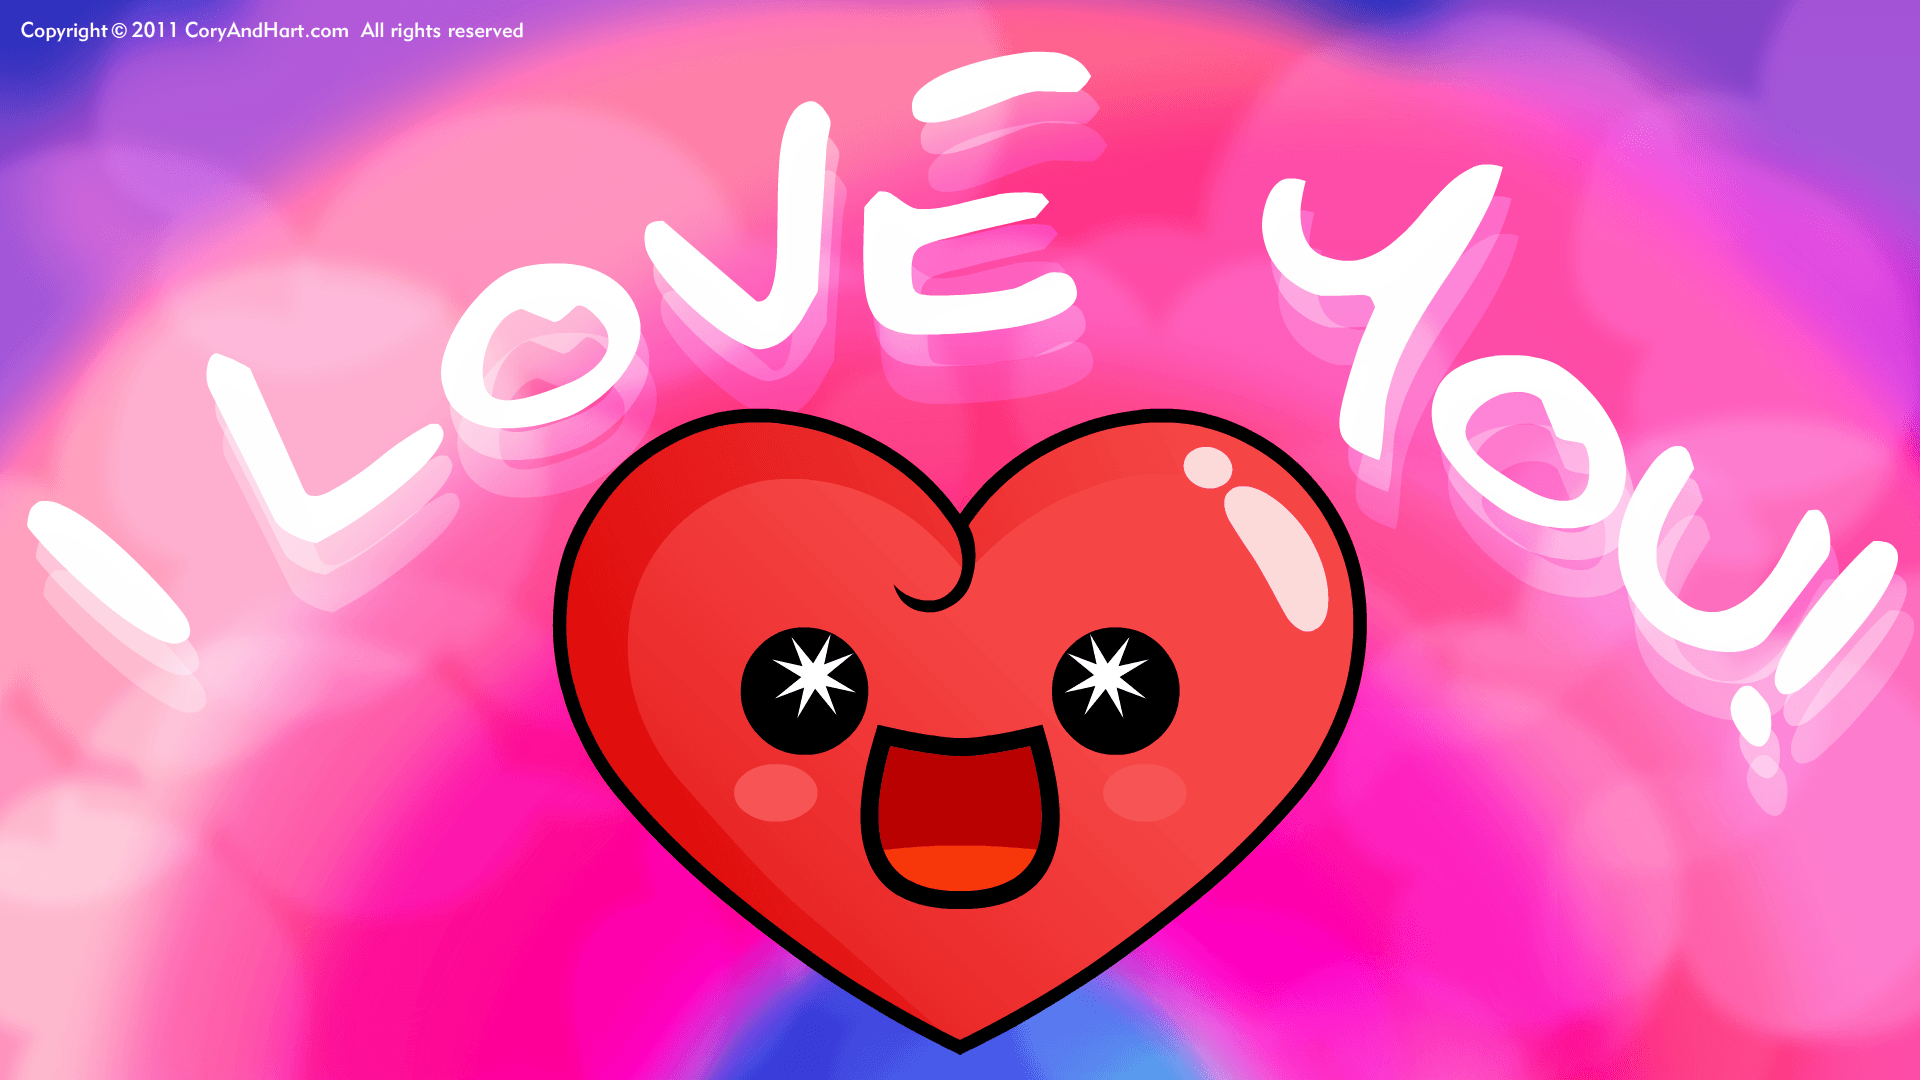 Wallpaper I Love You Babe : Hart Wallpapers - Wallpaper cave